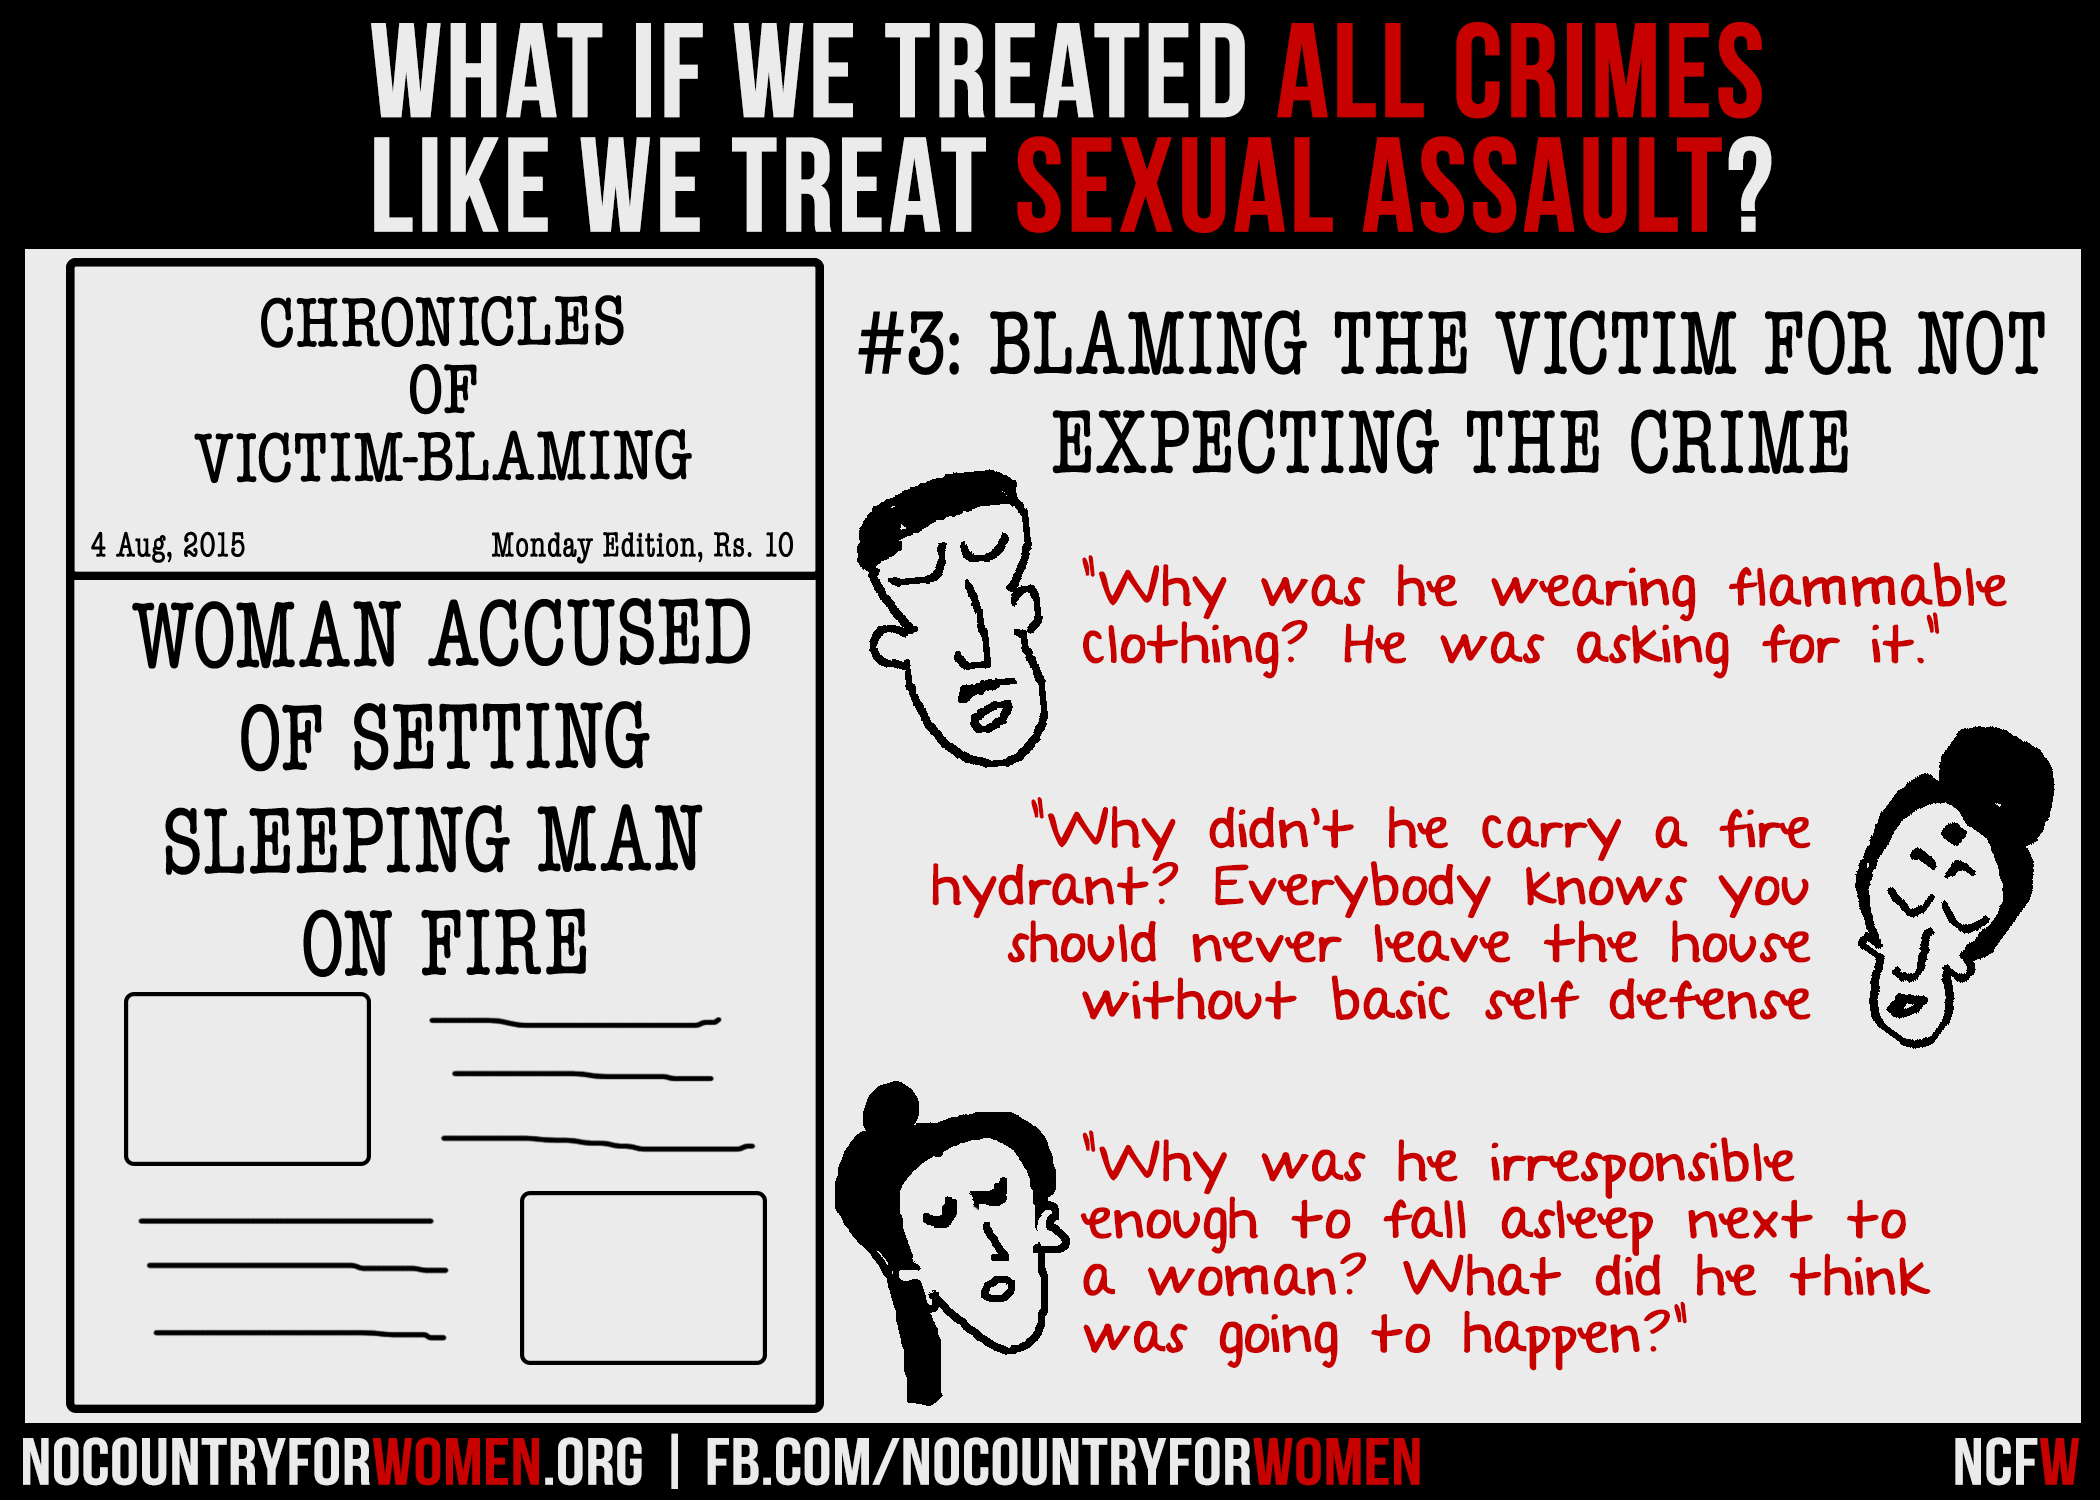 #3 Blaming The Victim For Not Expecting The Crime